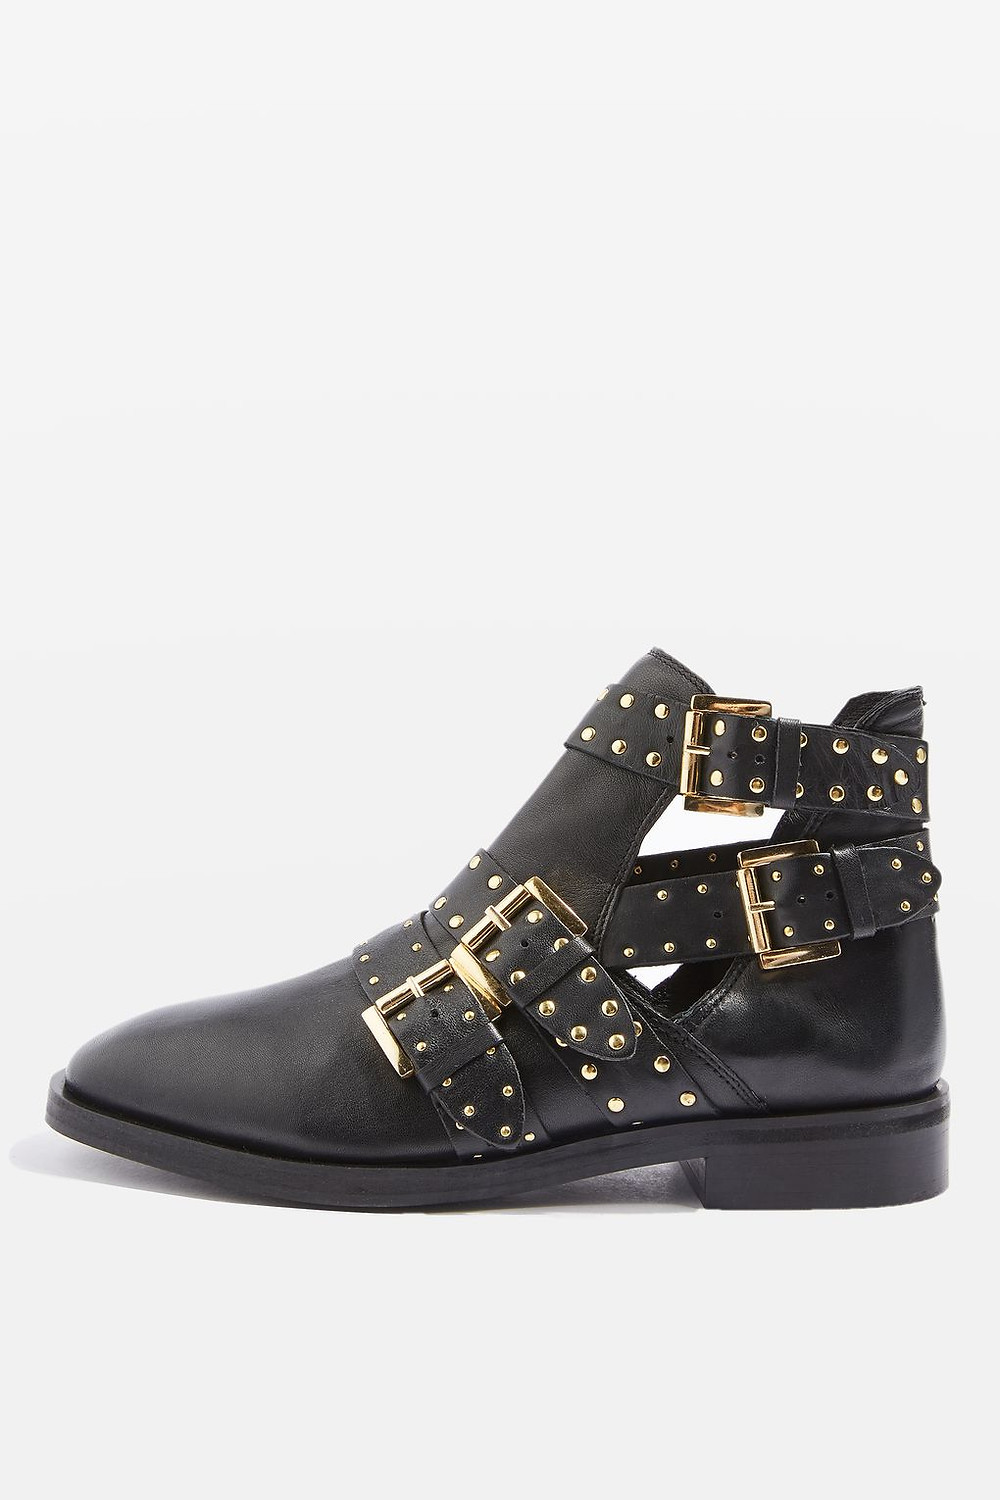 Topshop ARK Studded Buckle Boots